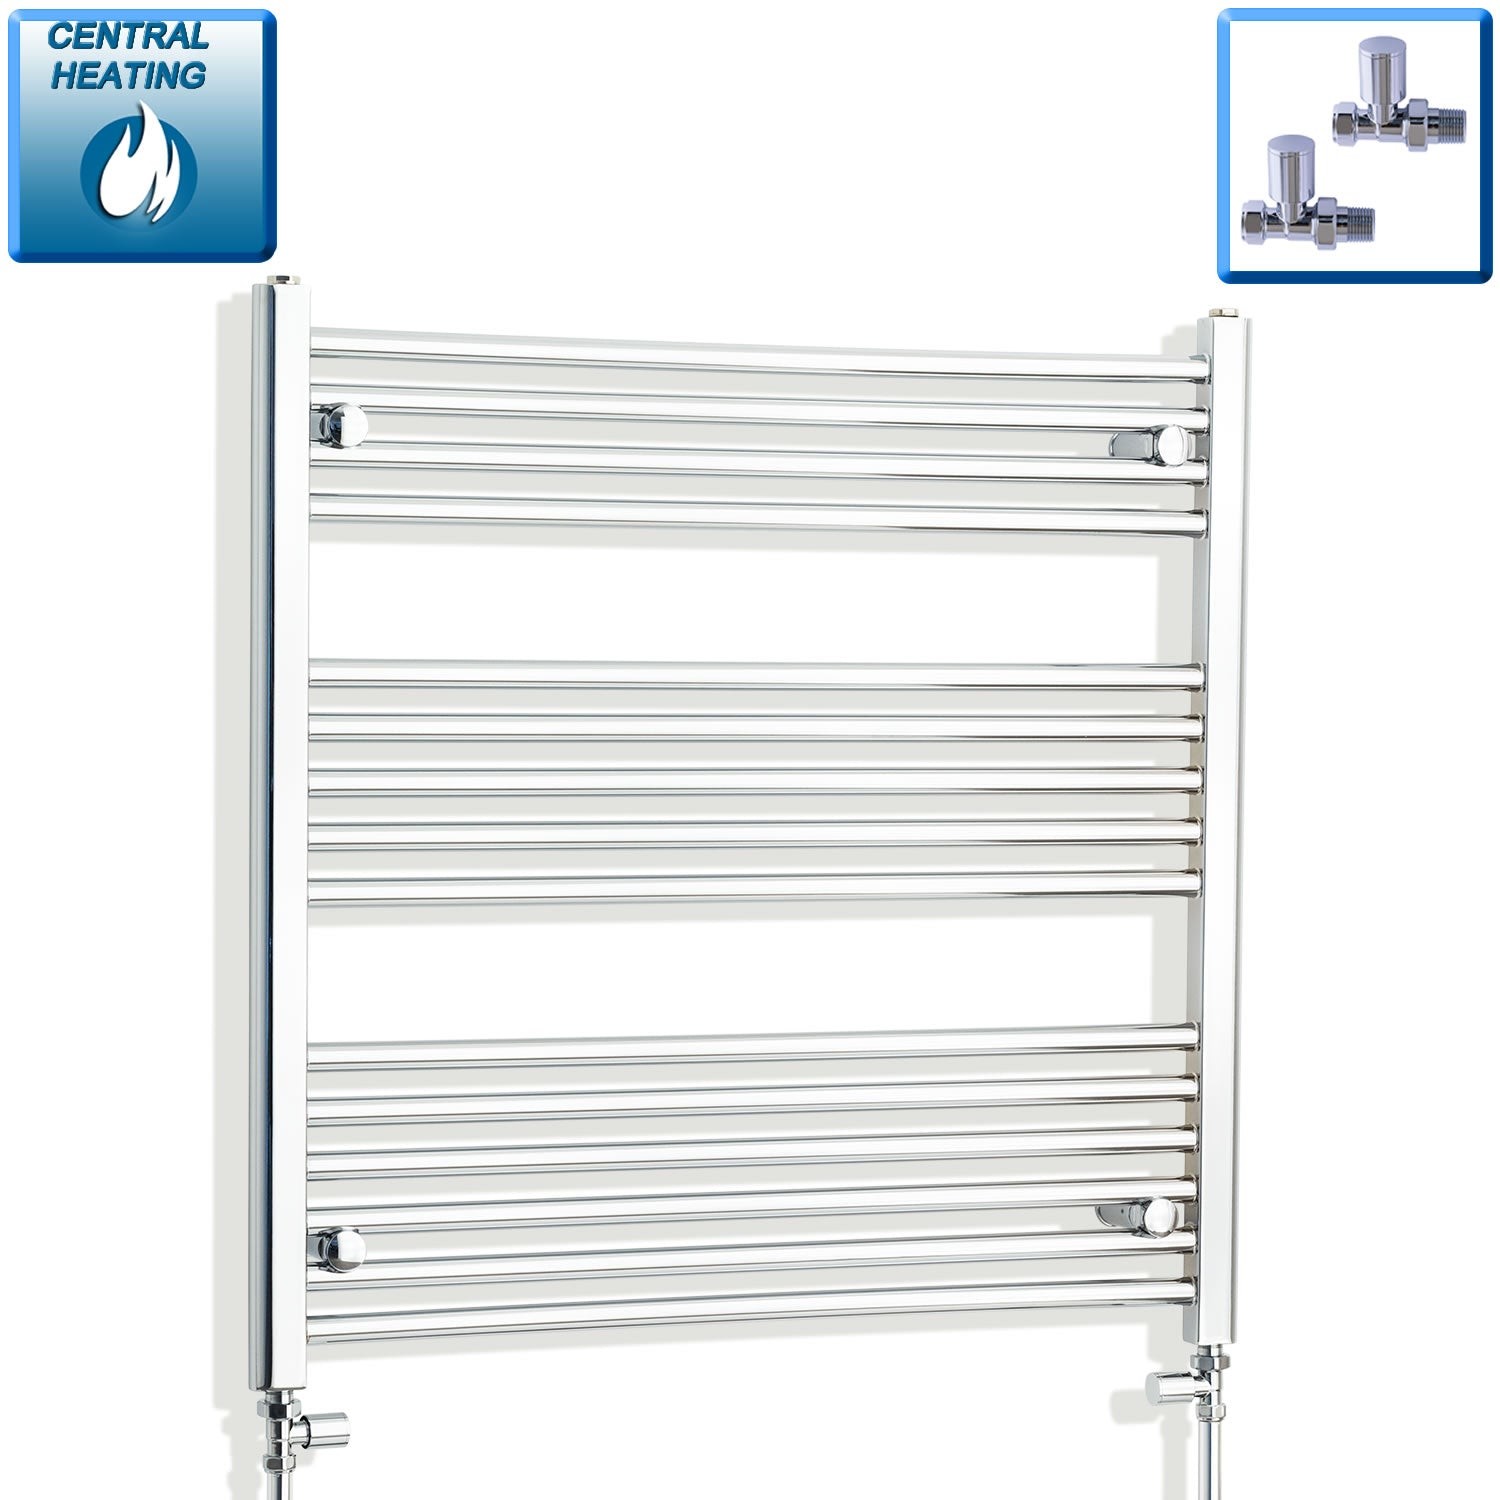 700mm Wide 800mm High Chrome Towel Rail Radiator With Straight Valve